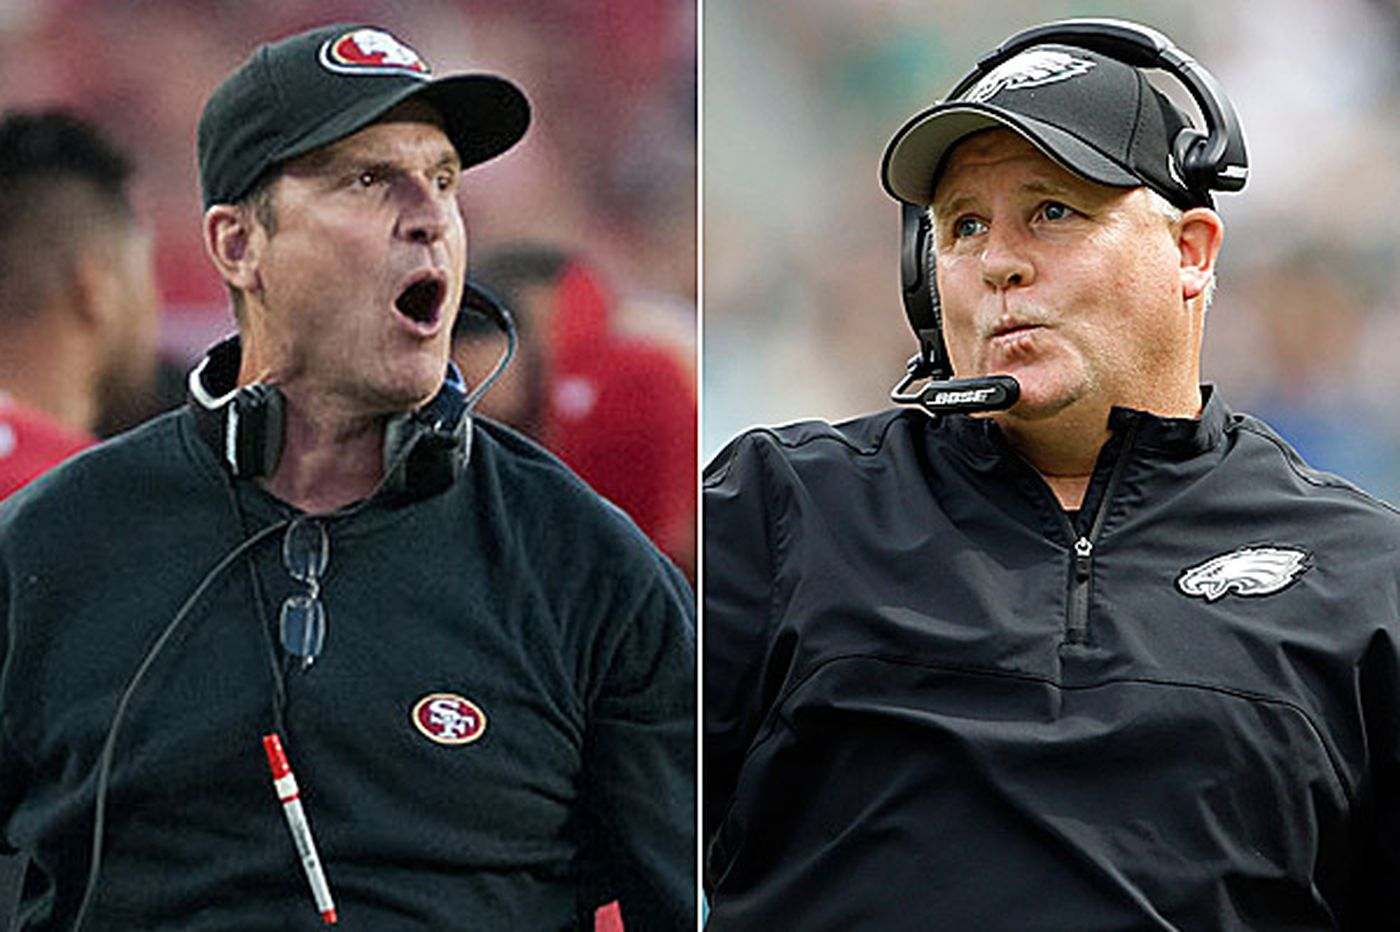 Kelly and Harbaugh, two football guys, square off